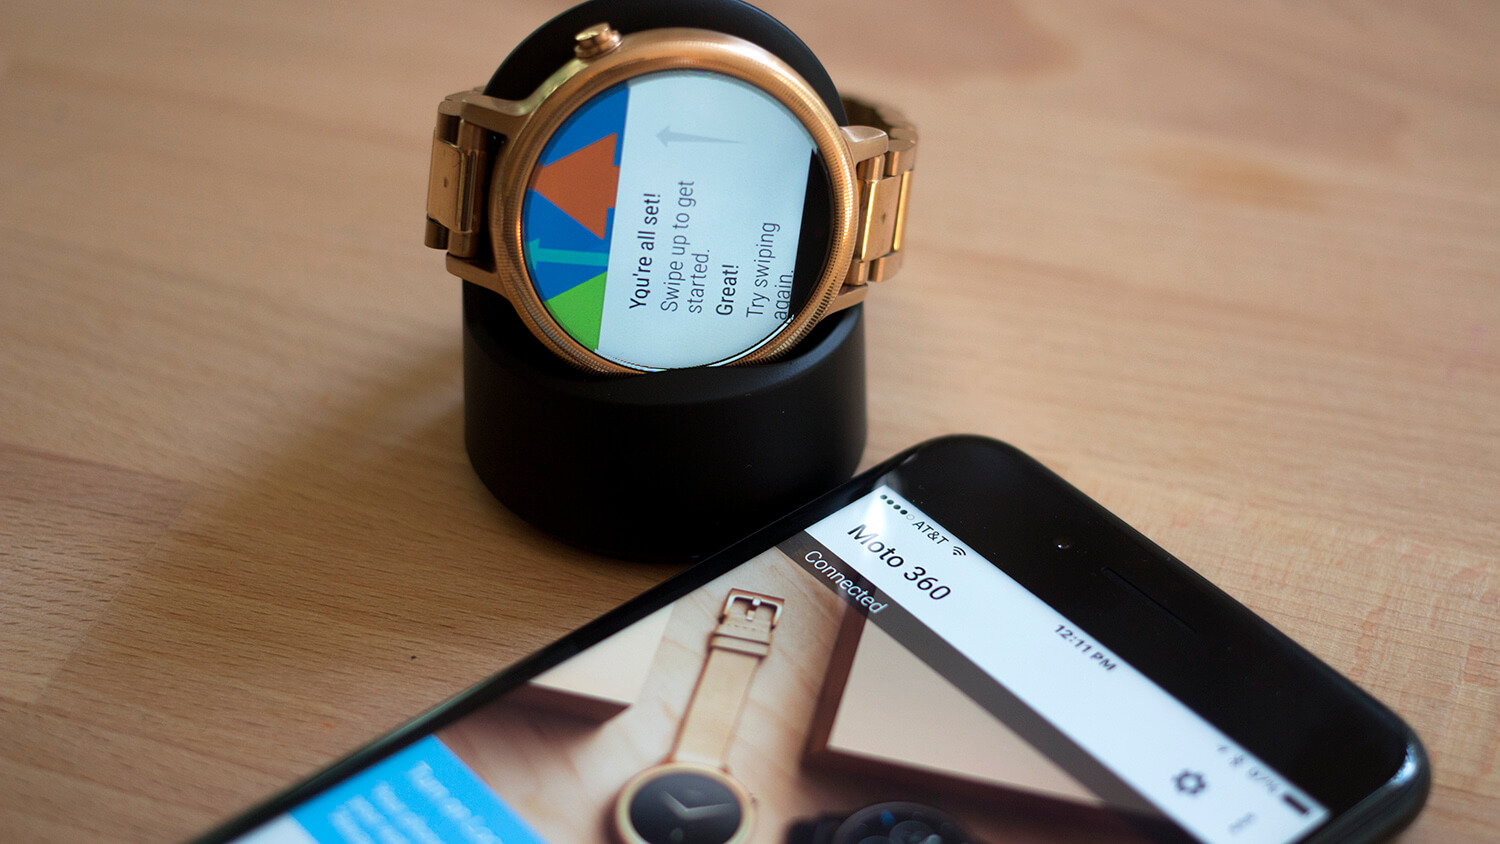 Moto 360 Android Wear iPhone 7 bluetooth connectivity issues